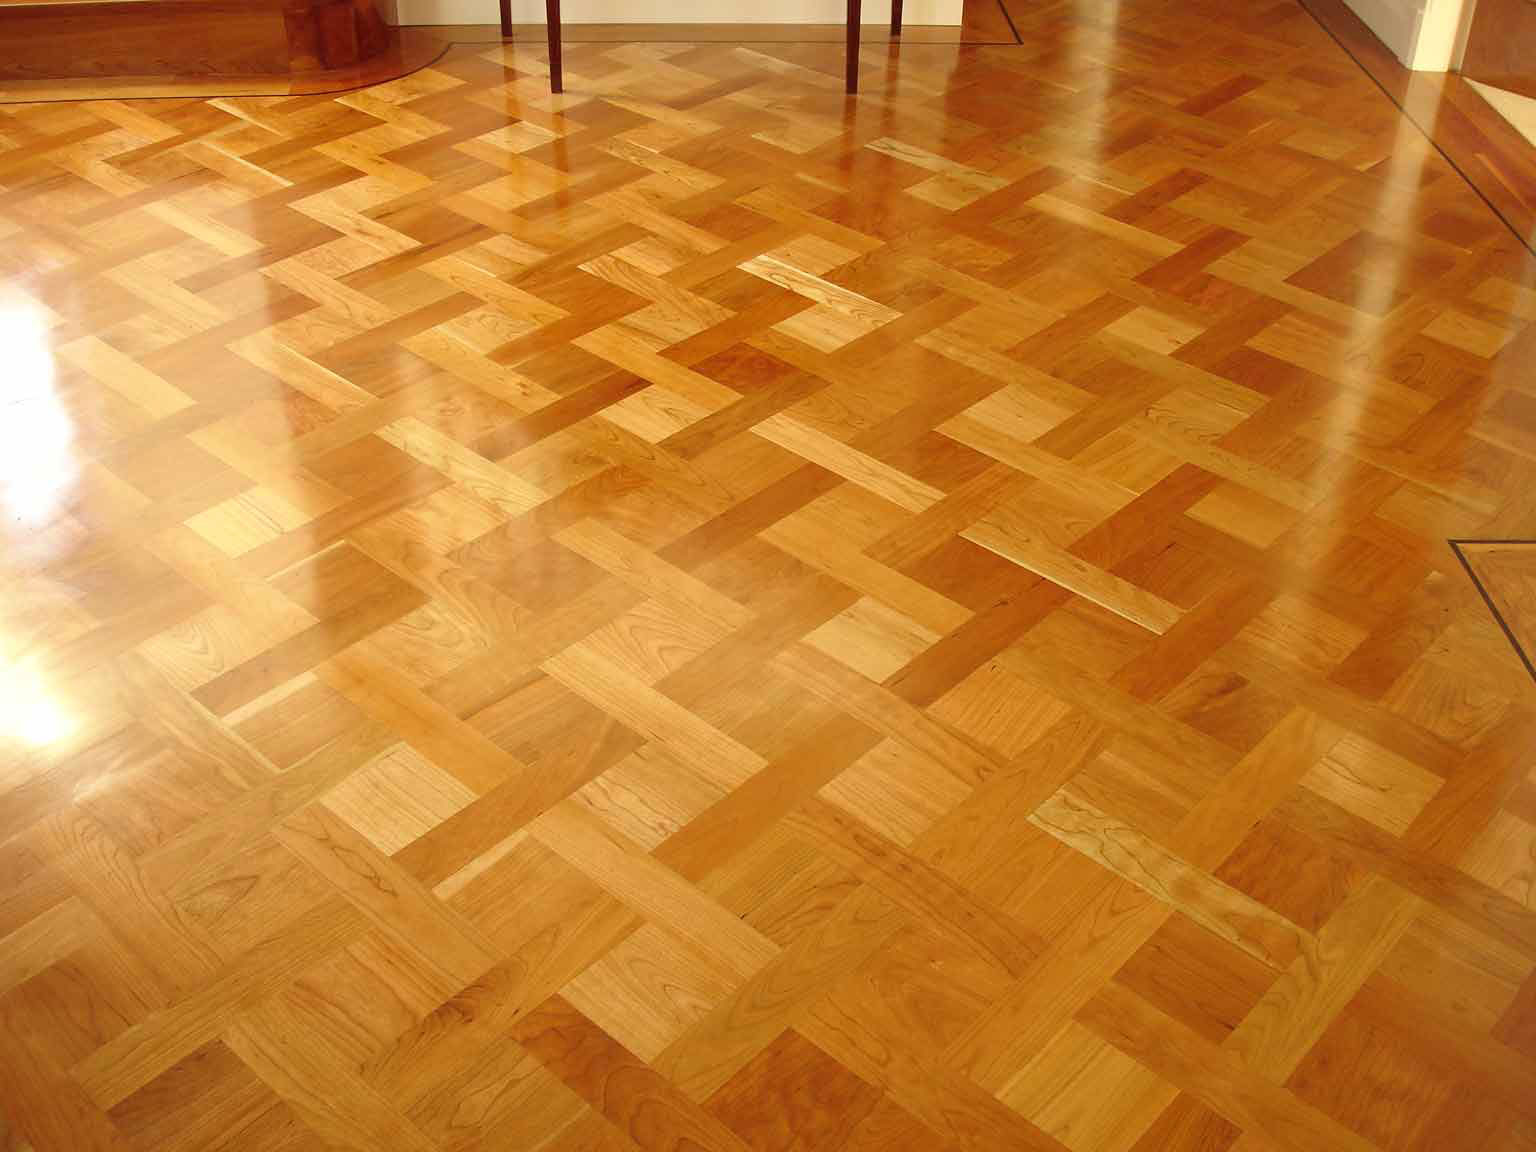 Wood flooring ideas design wood flooring ideas home trendy for Hardwood floors or carpet